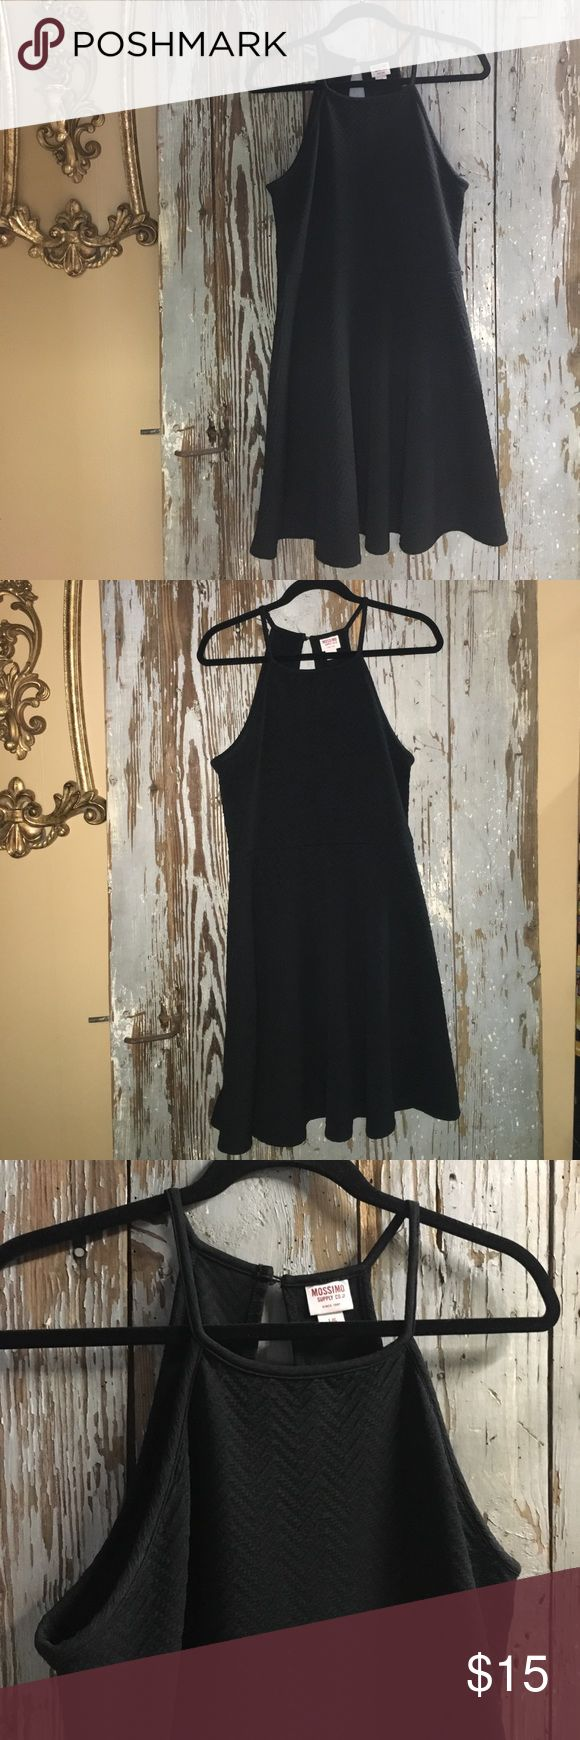 Black high neck dress High neck dress. Quilted texture. Light weight but not see through. Knee length. Great for summer weddings. *consignment item - she's firm on price* Dresses